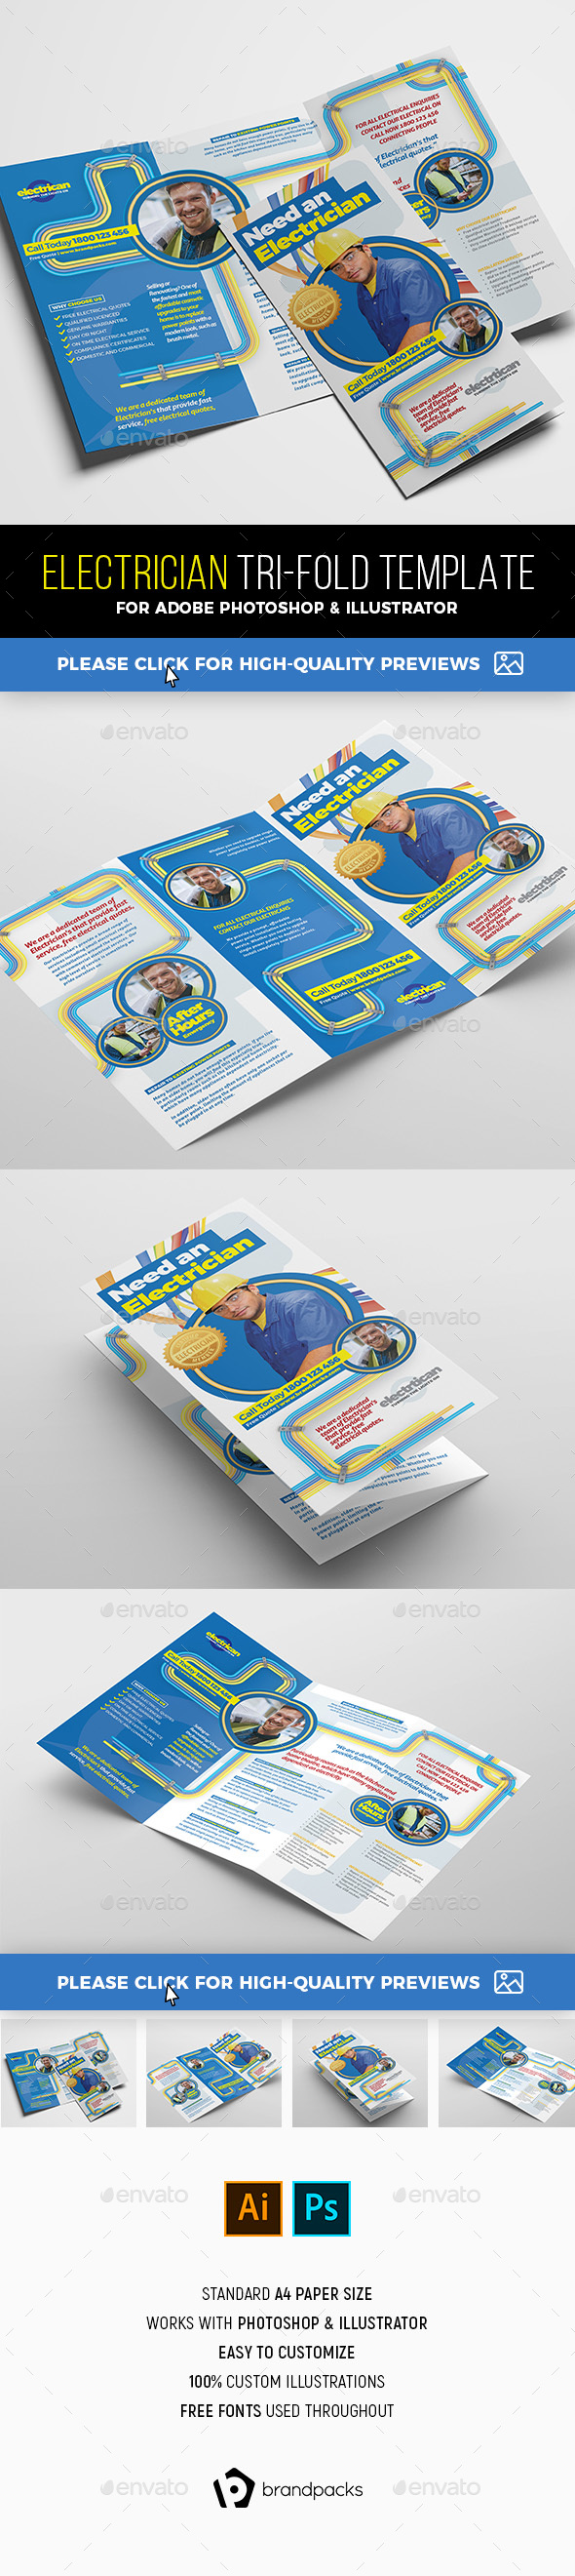 Electrician Tri-Fold Brochure Template - Commerce Flyers